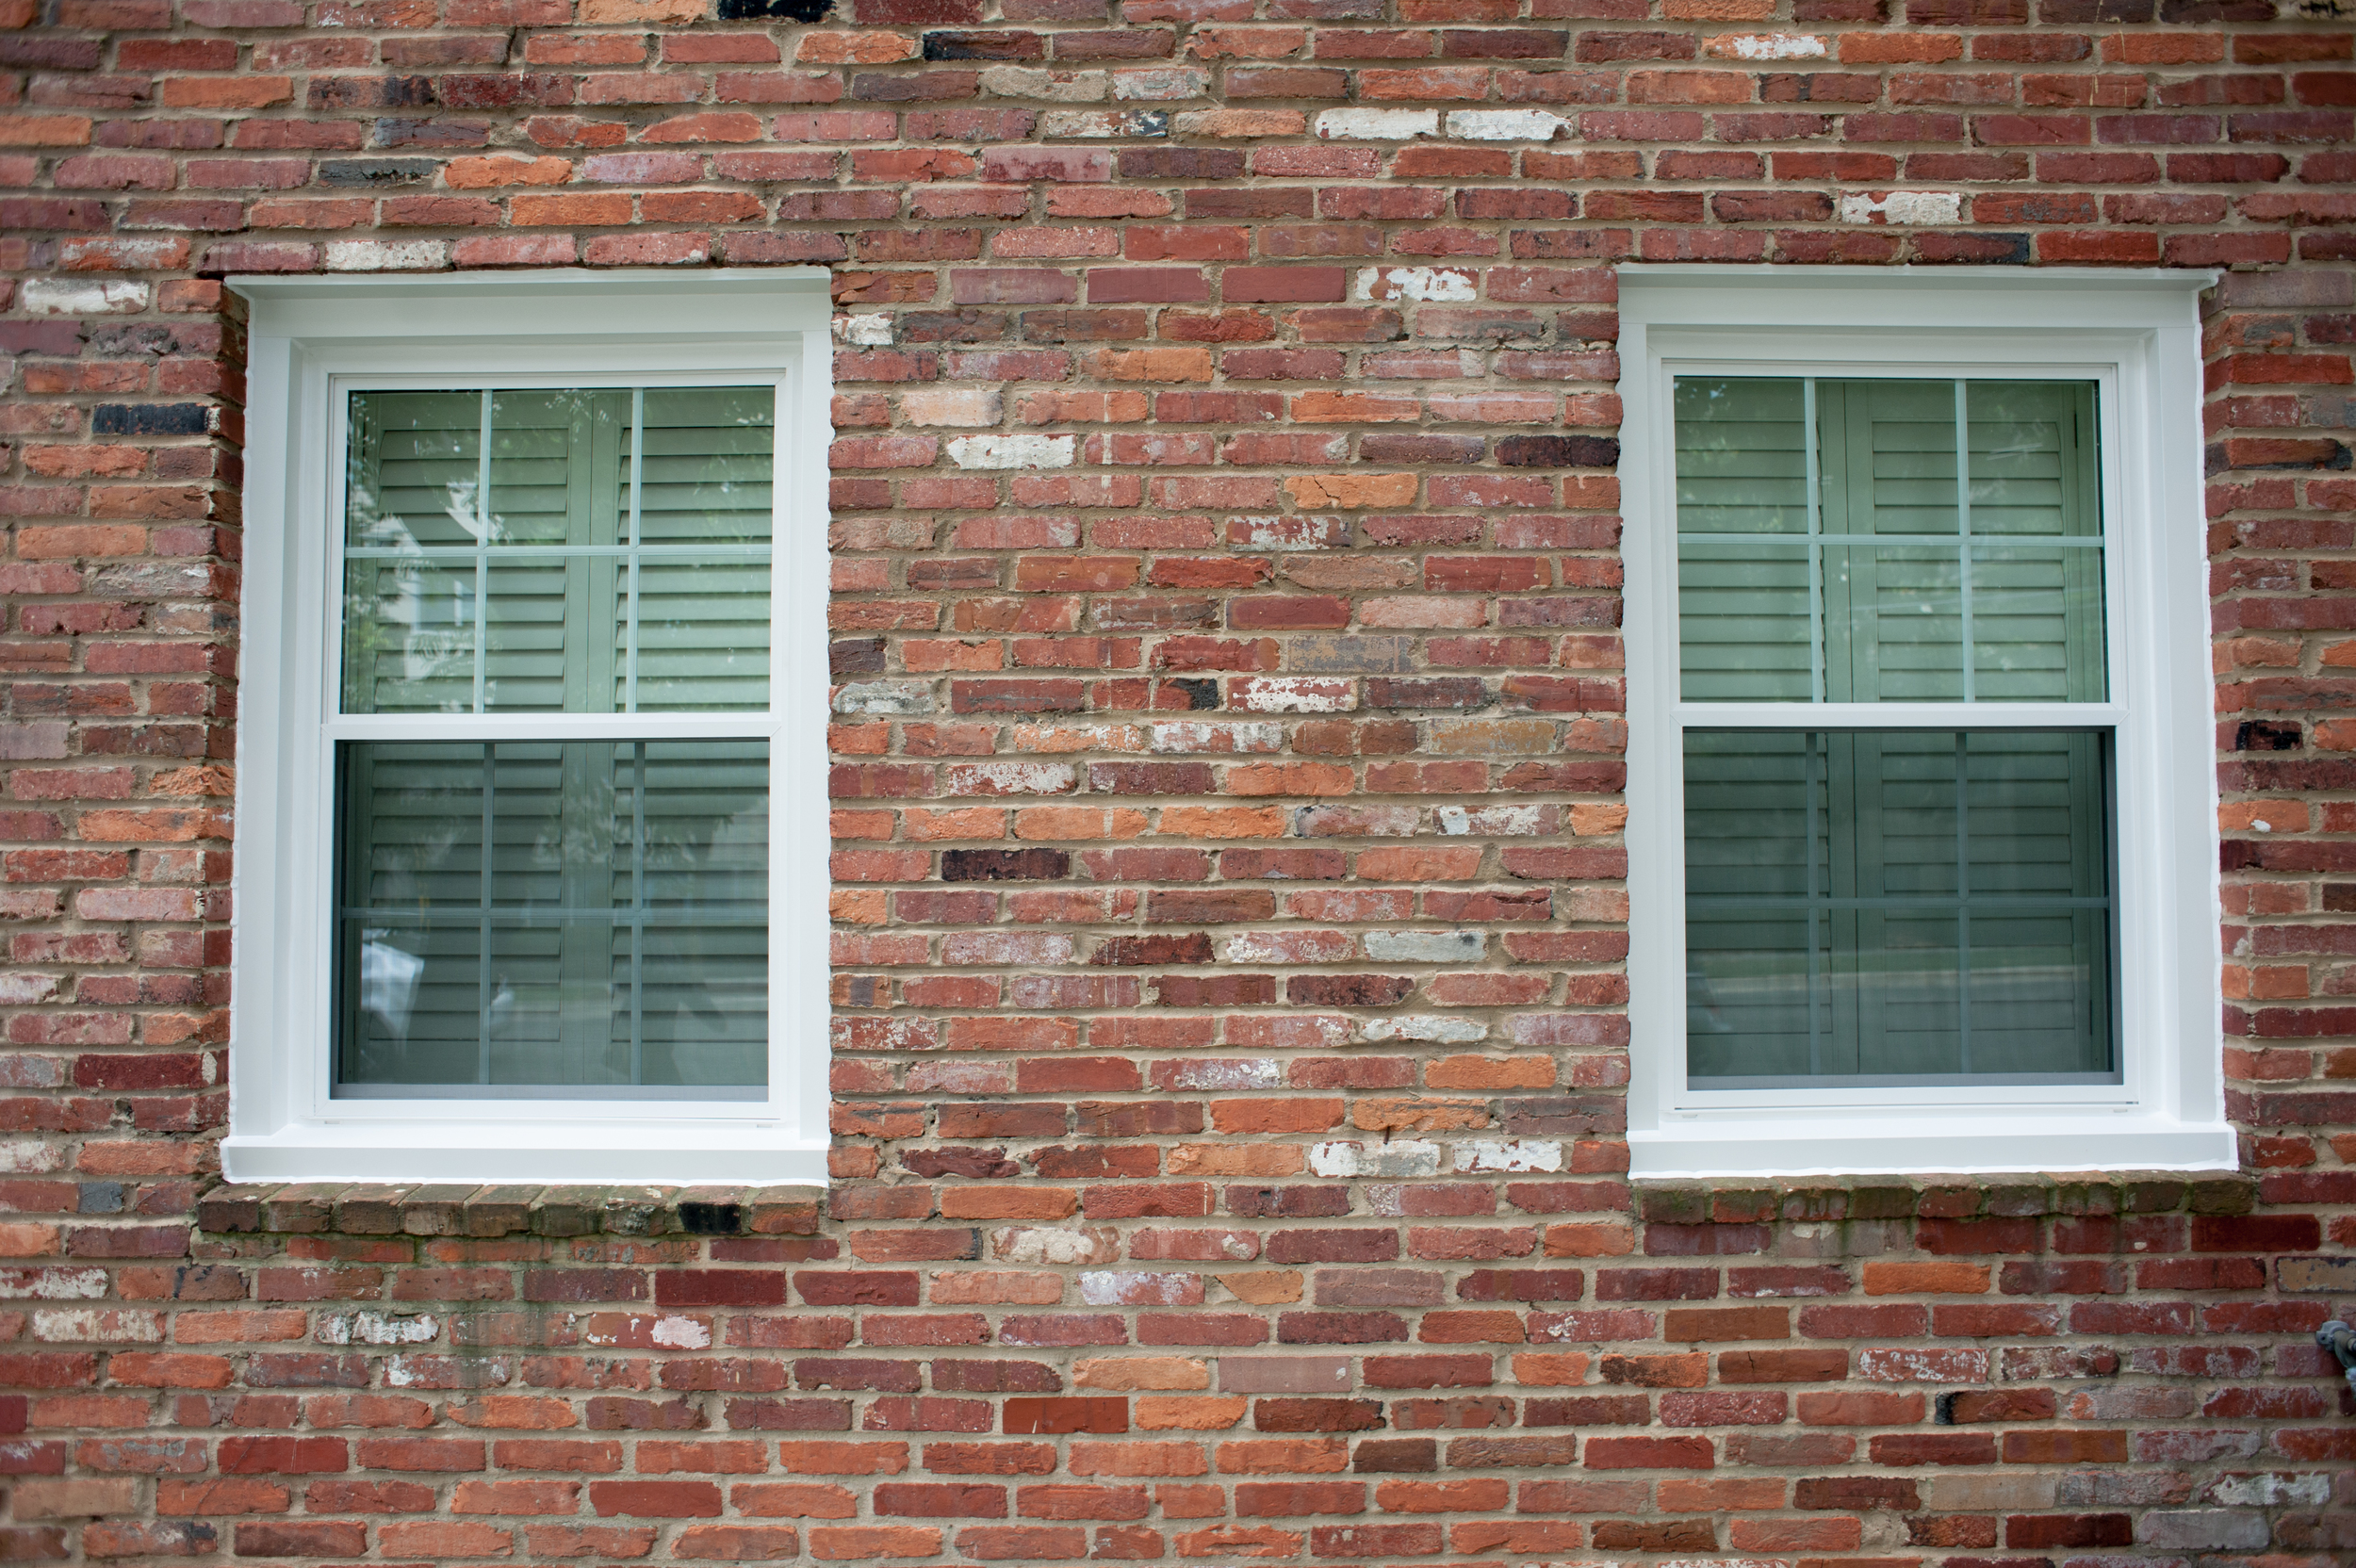 Windows replacement Baltimore, MD